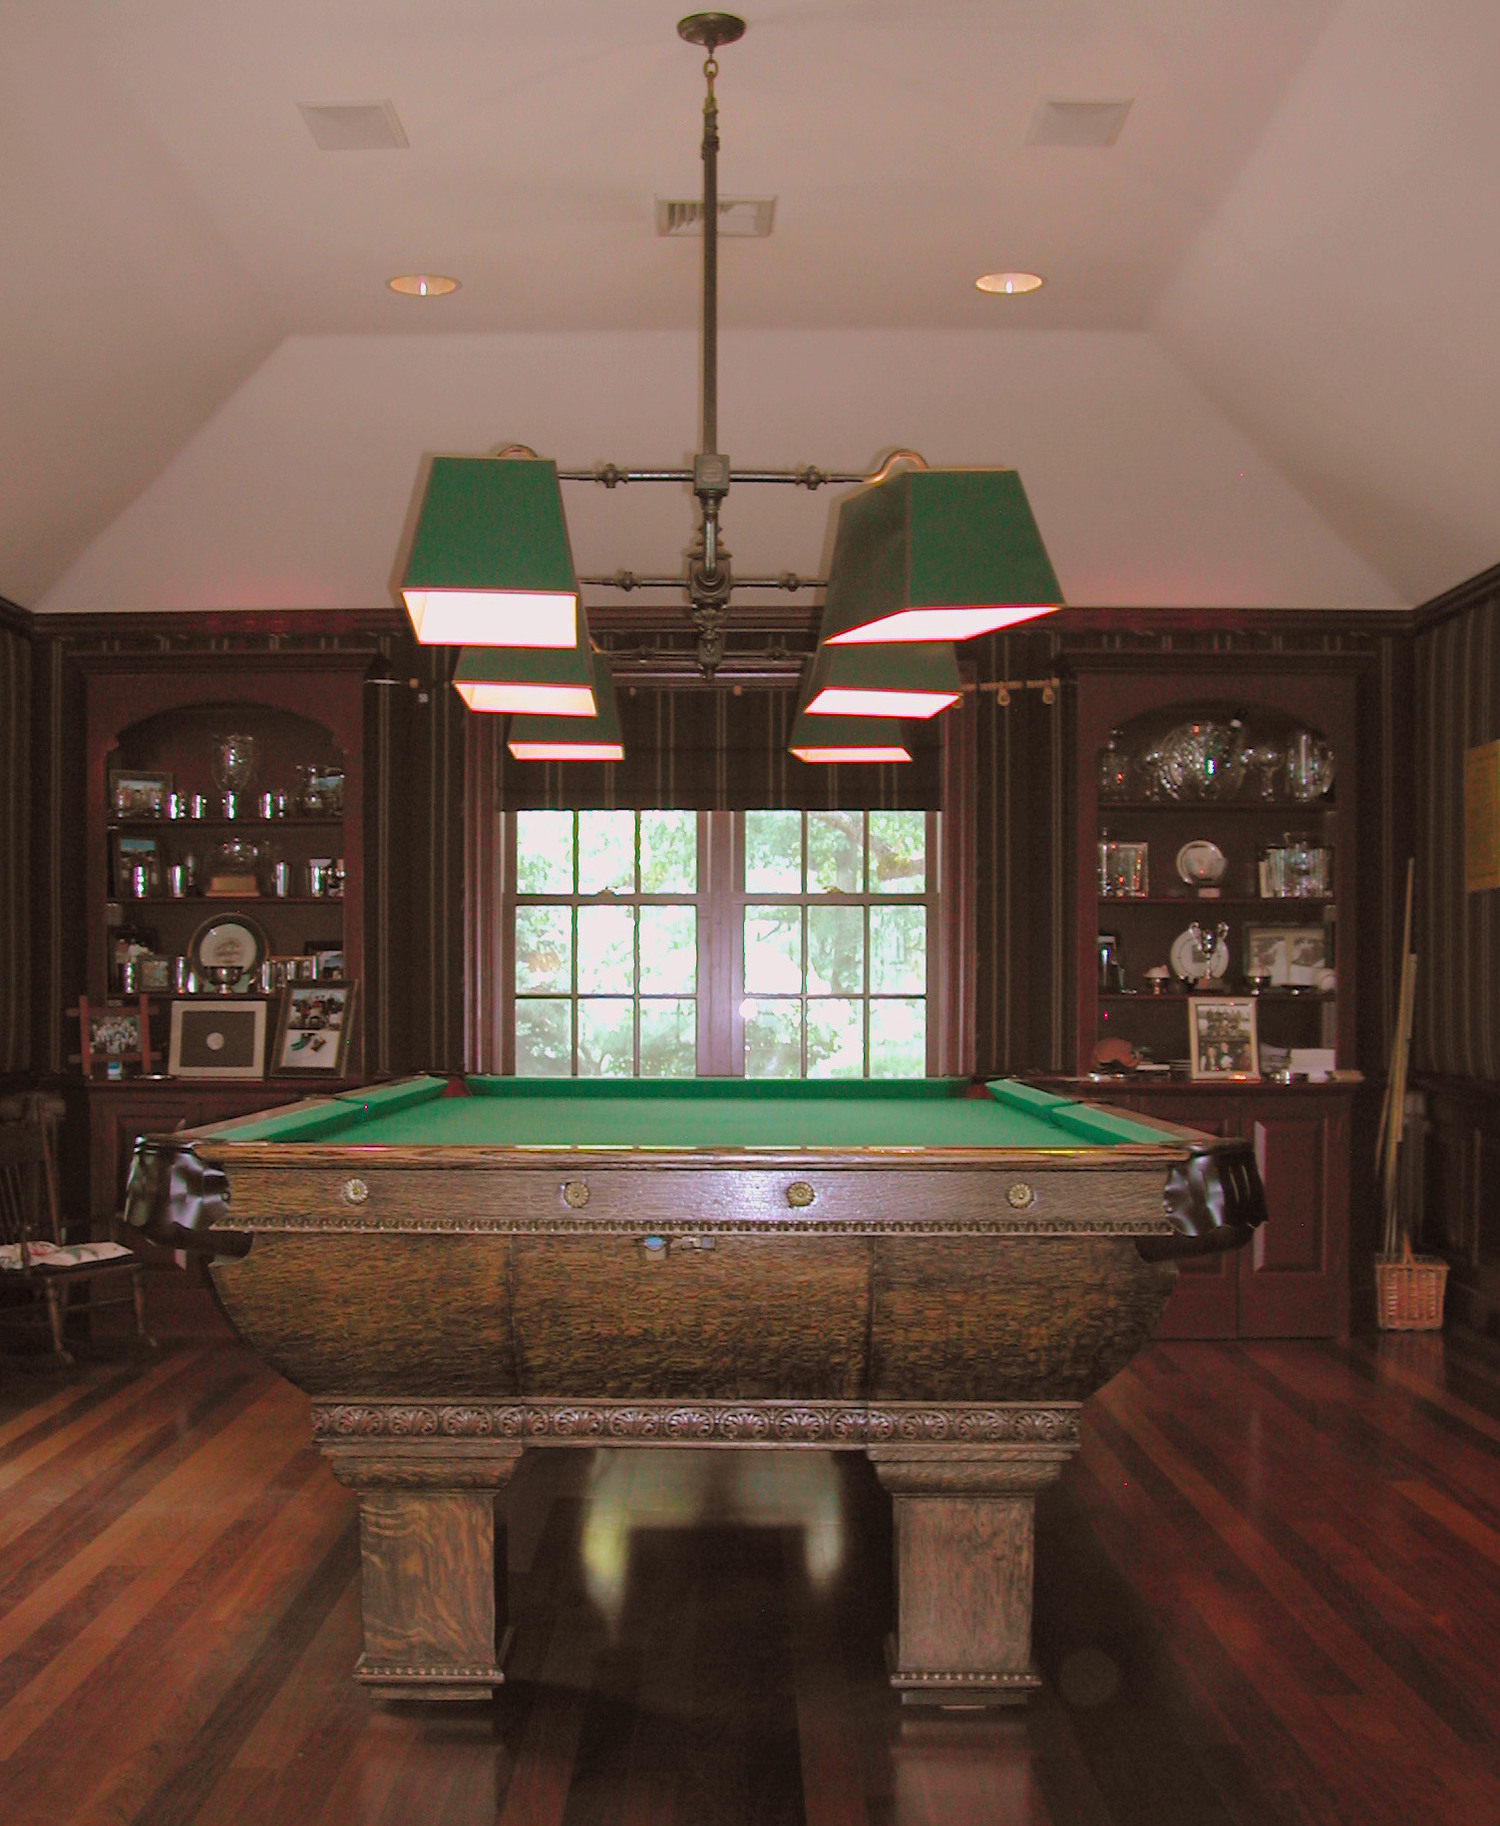 The tray ceiling provides a suitable setting for the full-sized pool table, and period lights.